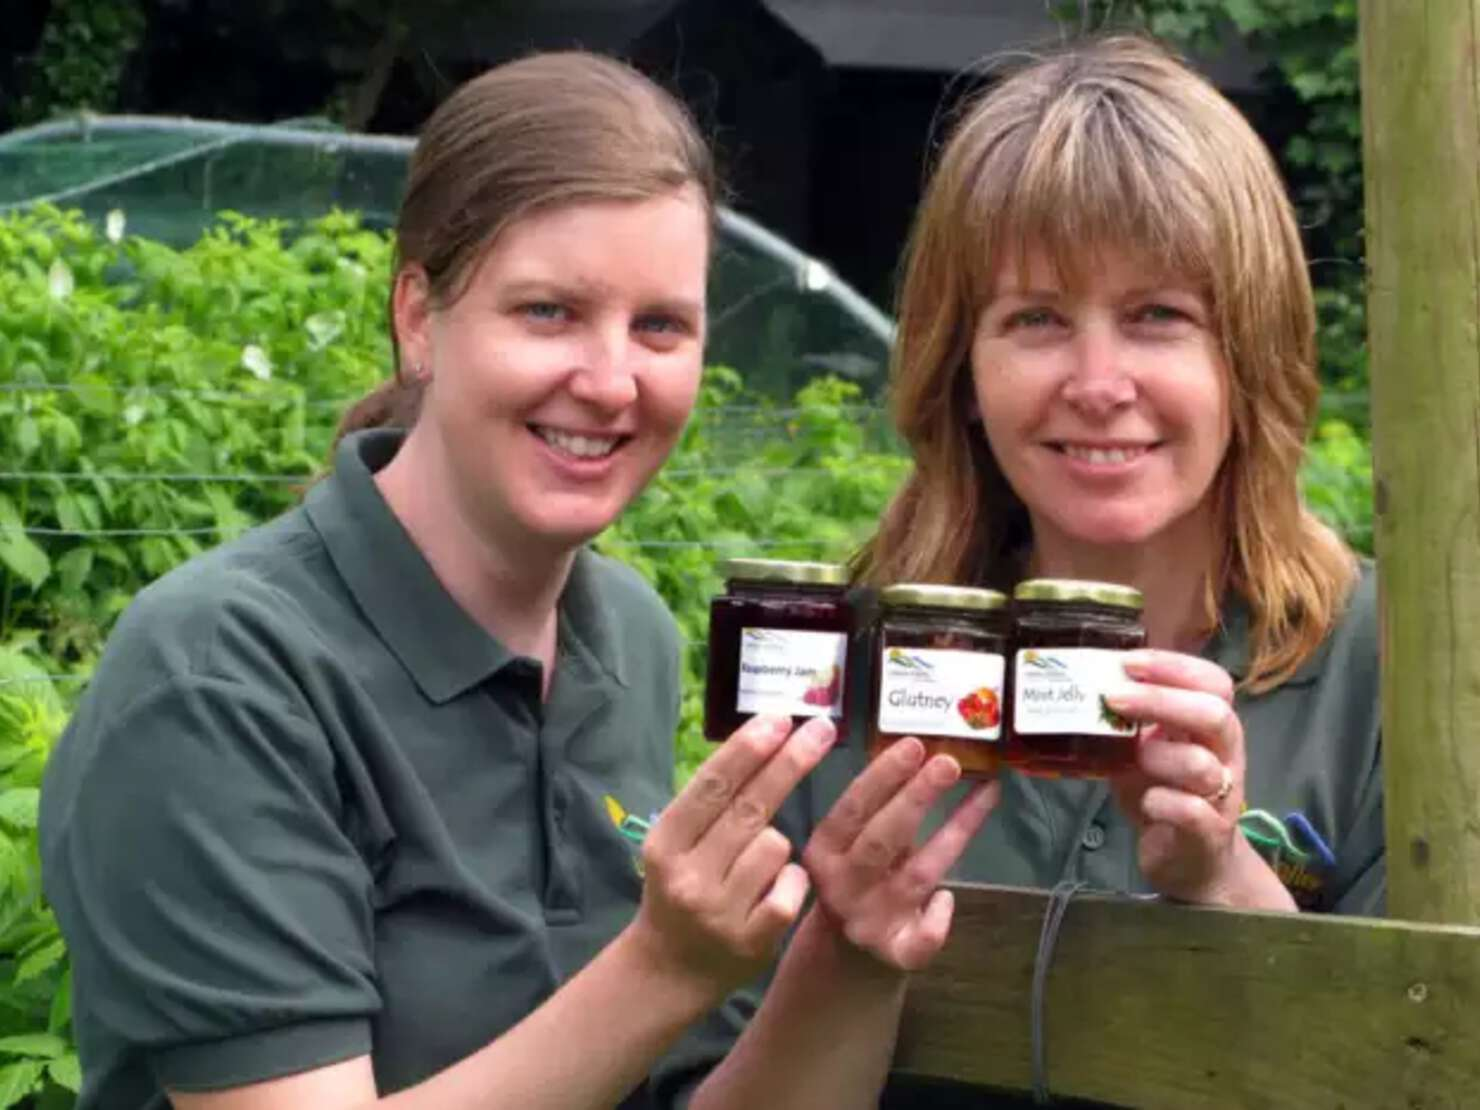 Loxley Valley Community Farm Open Day: Wendy Burroughes (left) and Elaine Trippet with some of the farm's chutney and jam